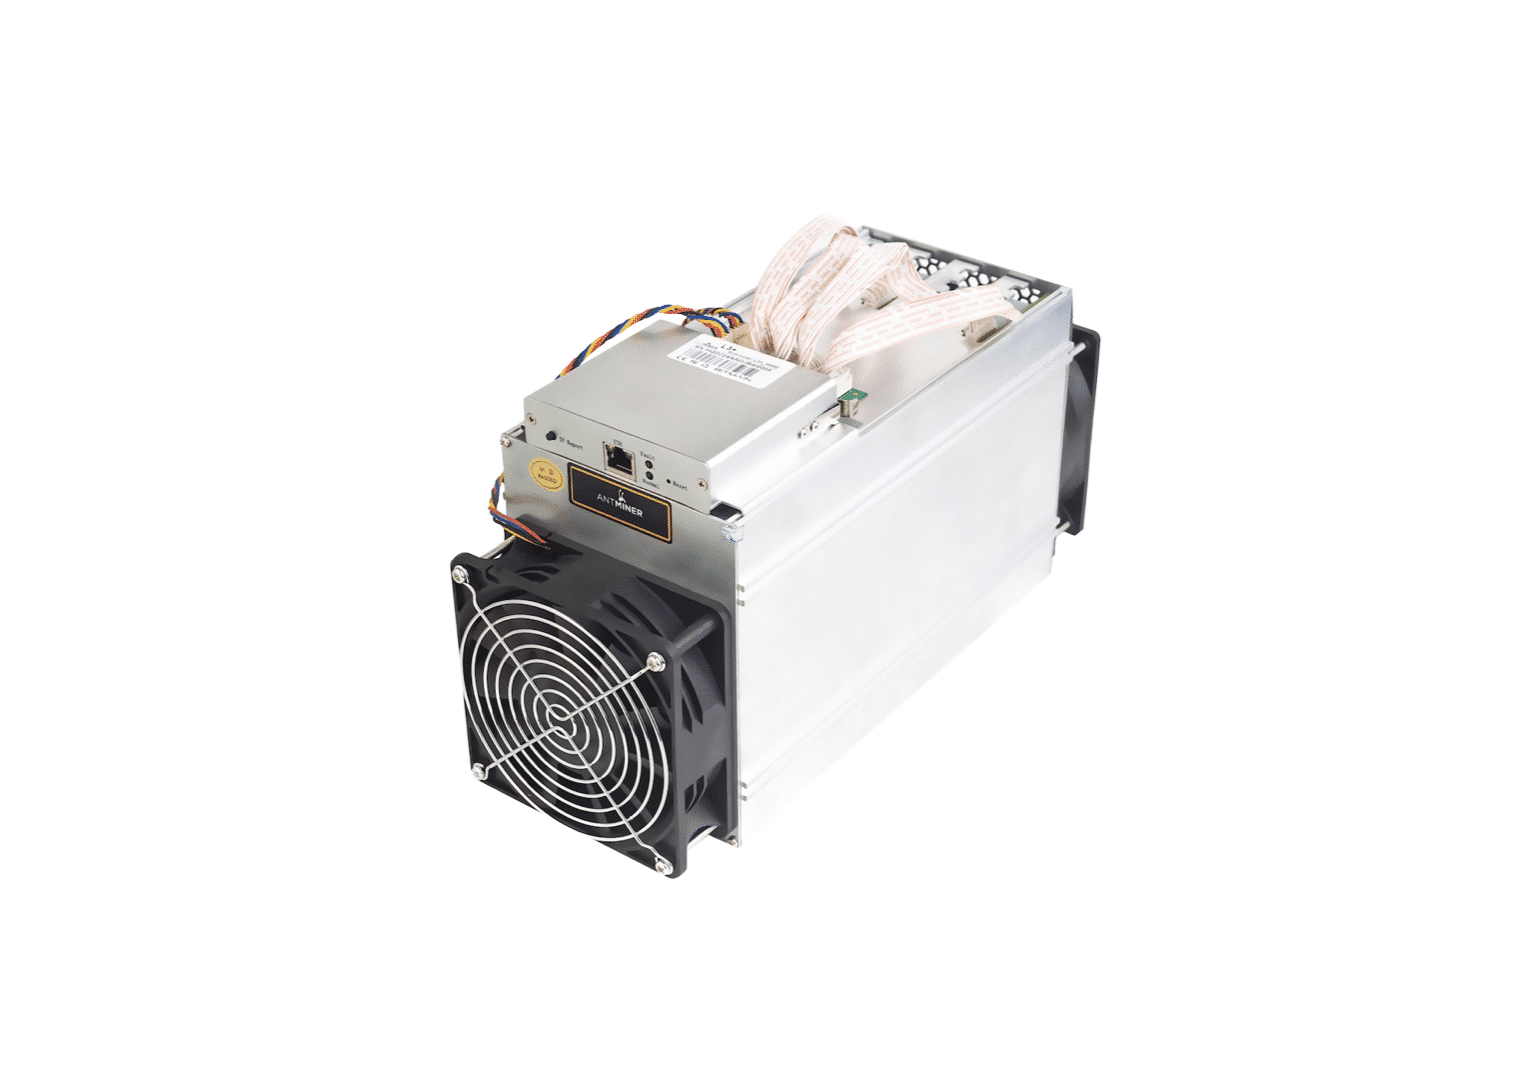 Antminer D3 Review – Dash ASIC X11 Miner